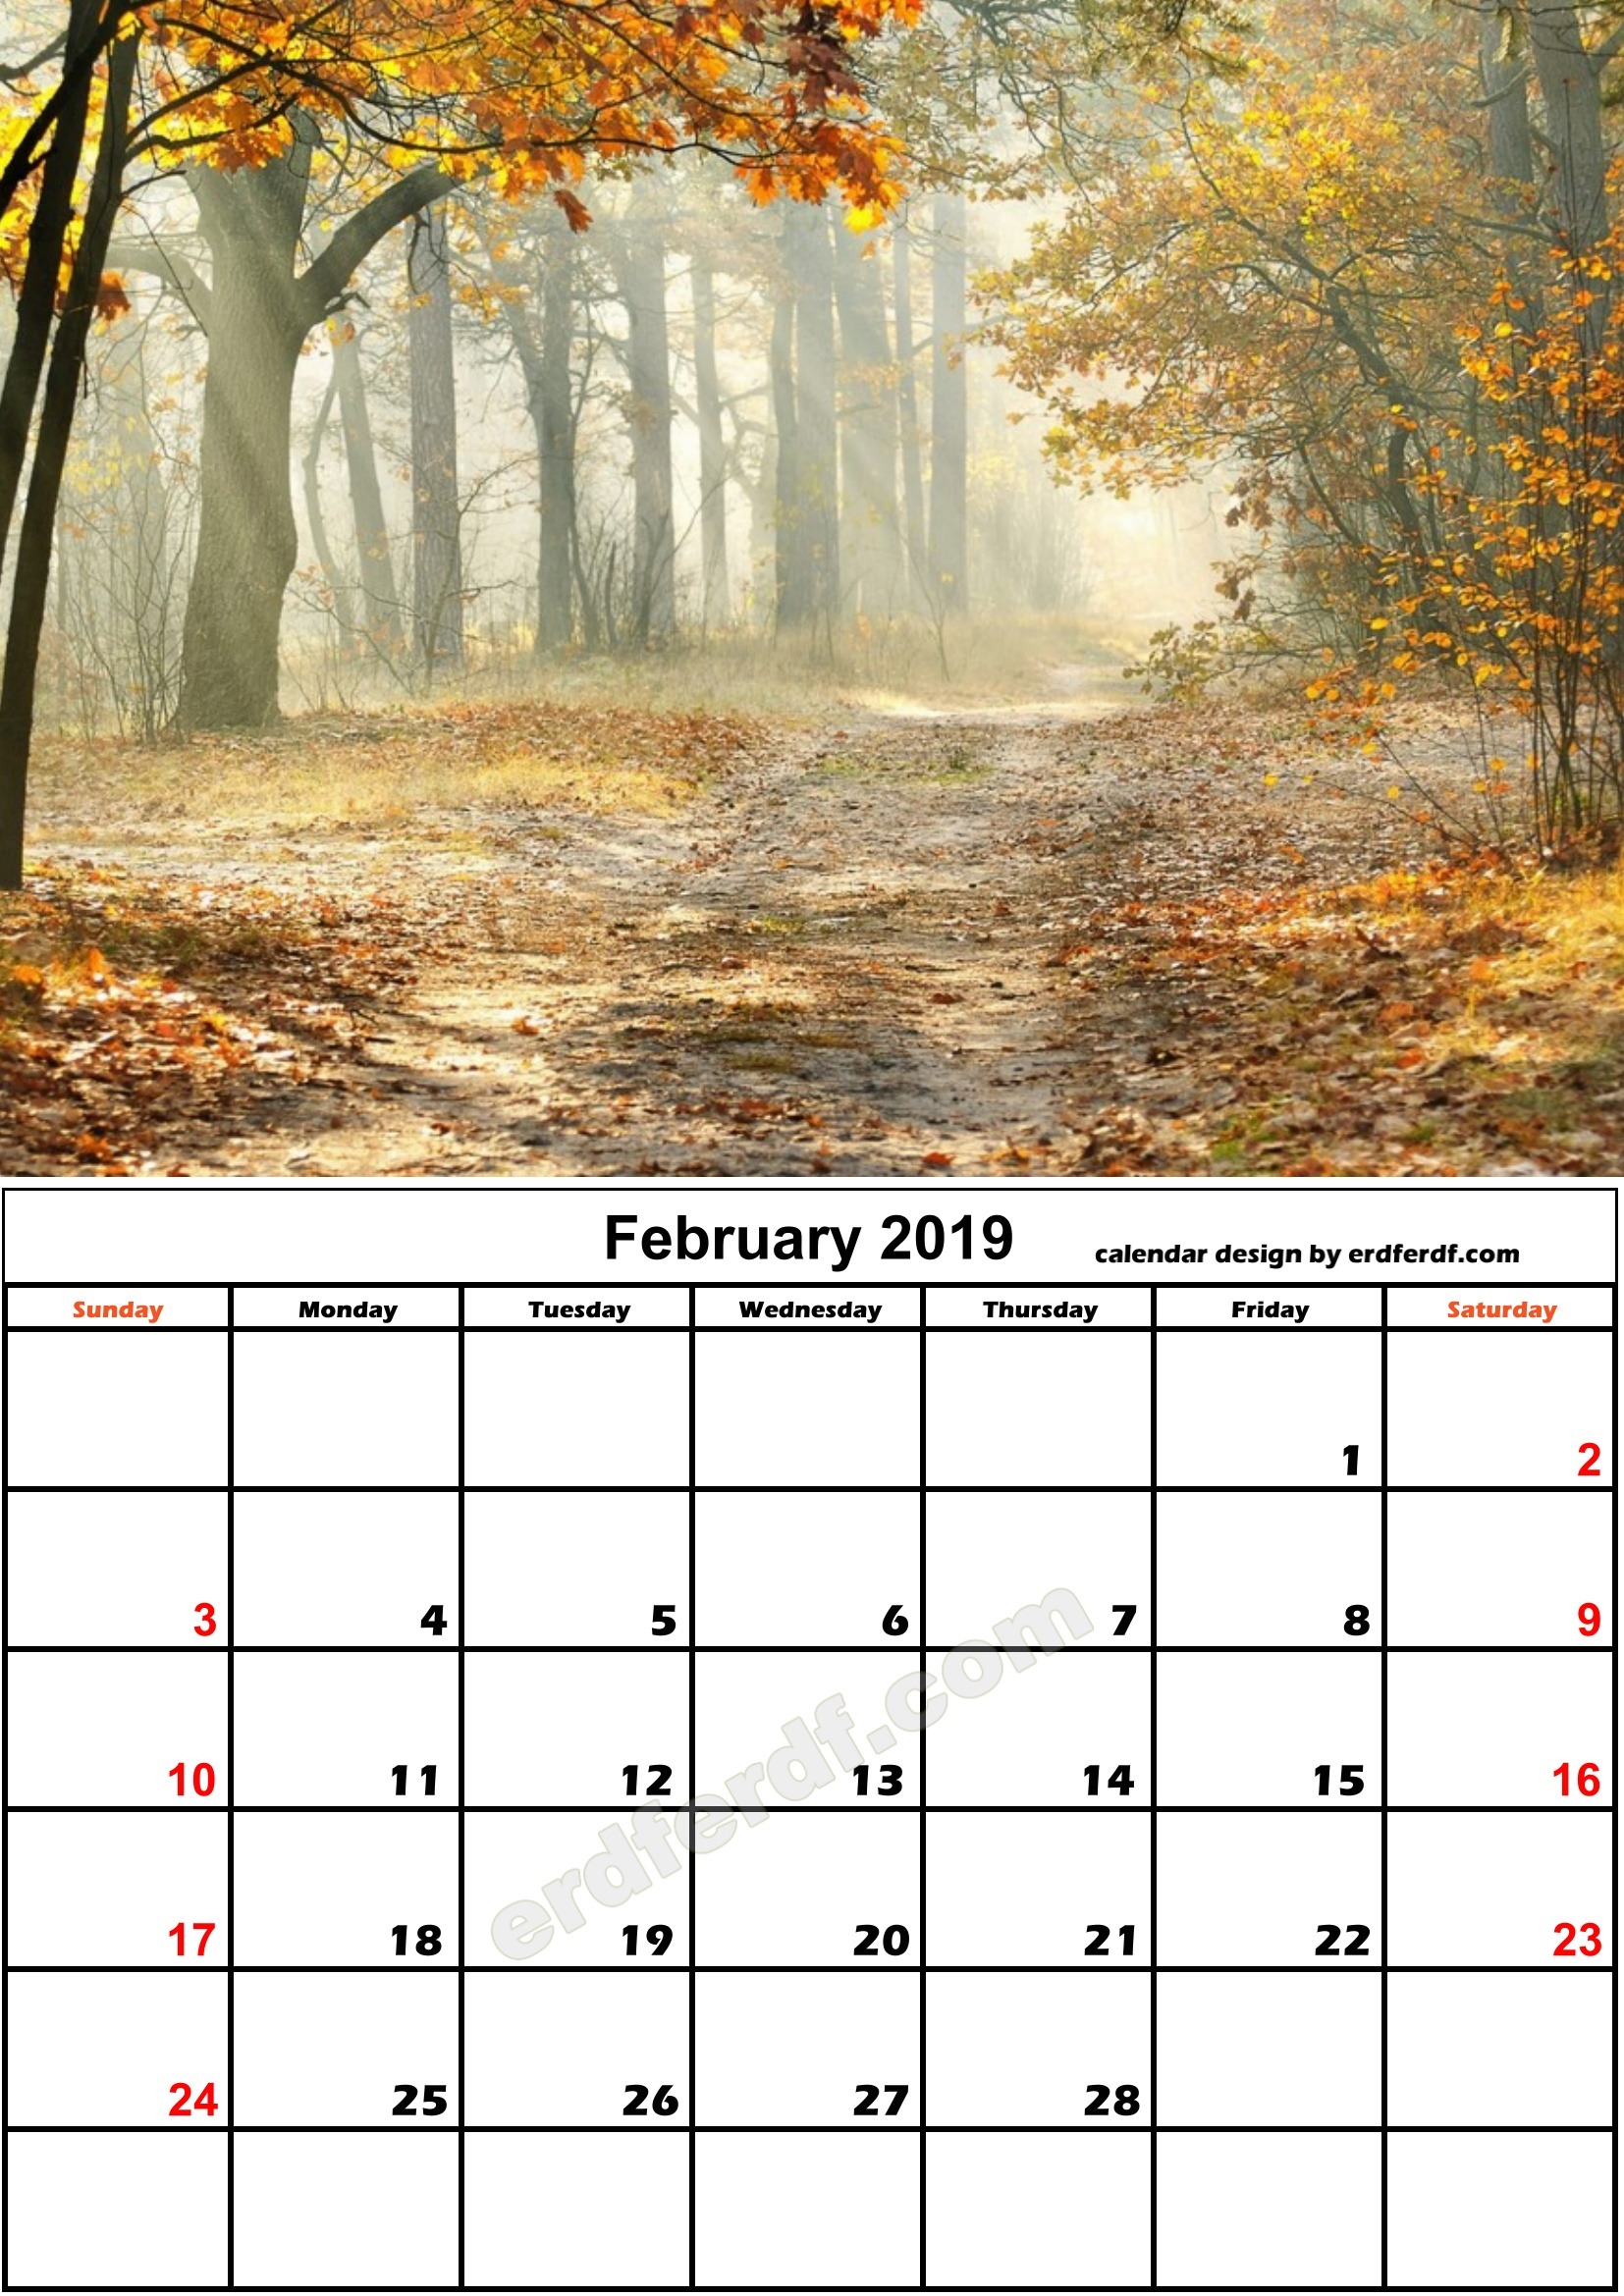 2 February Nature Calendar Monthly 2019 Free Download